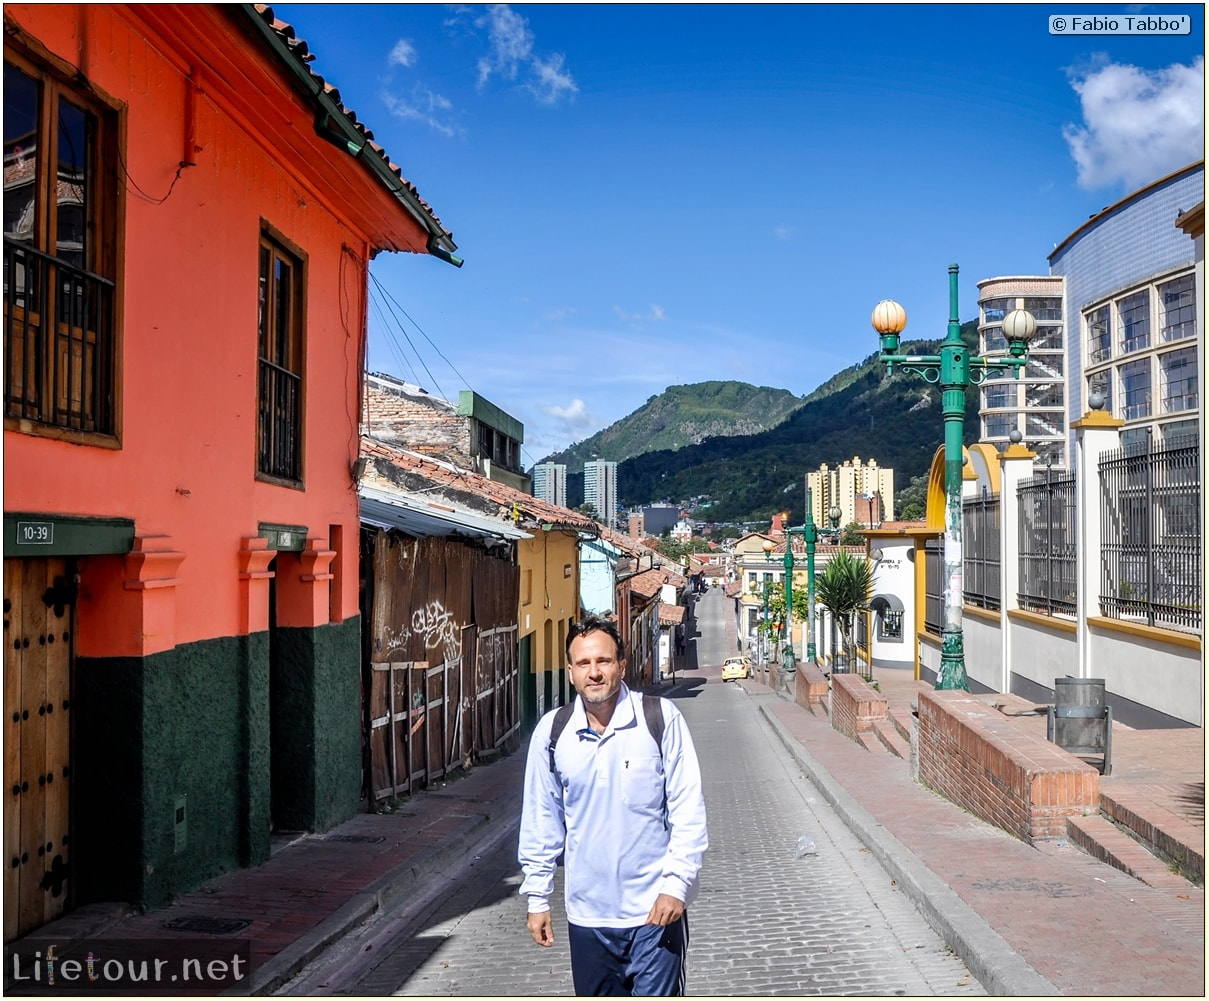 Fabio_s-LifeTour---Colombia-(2015-January-February)---Bogota_---Candelaria---Other-fotos-Candelaria---9379